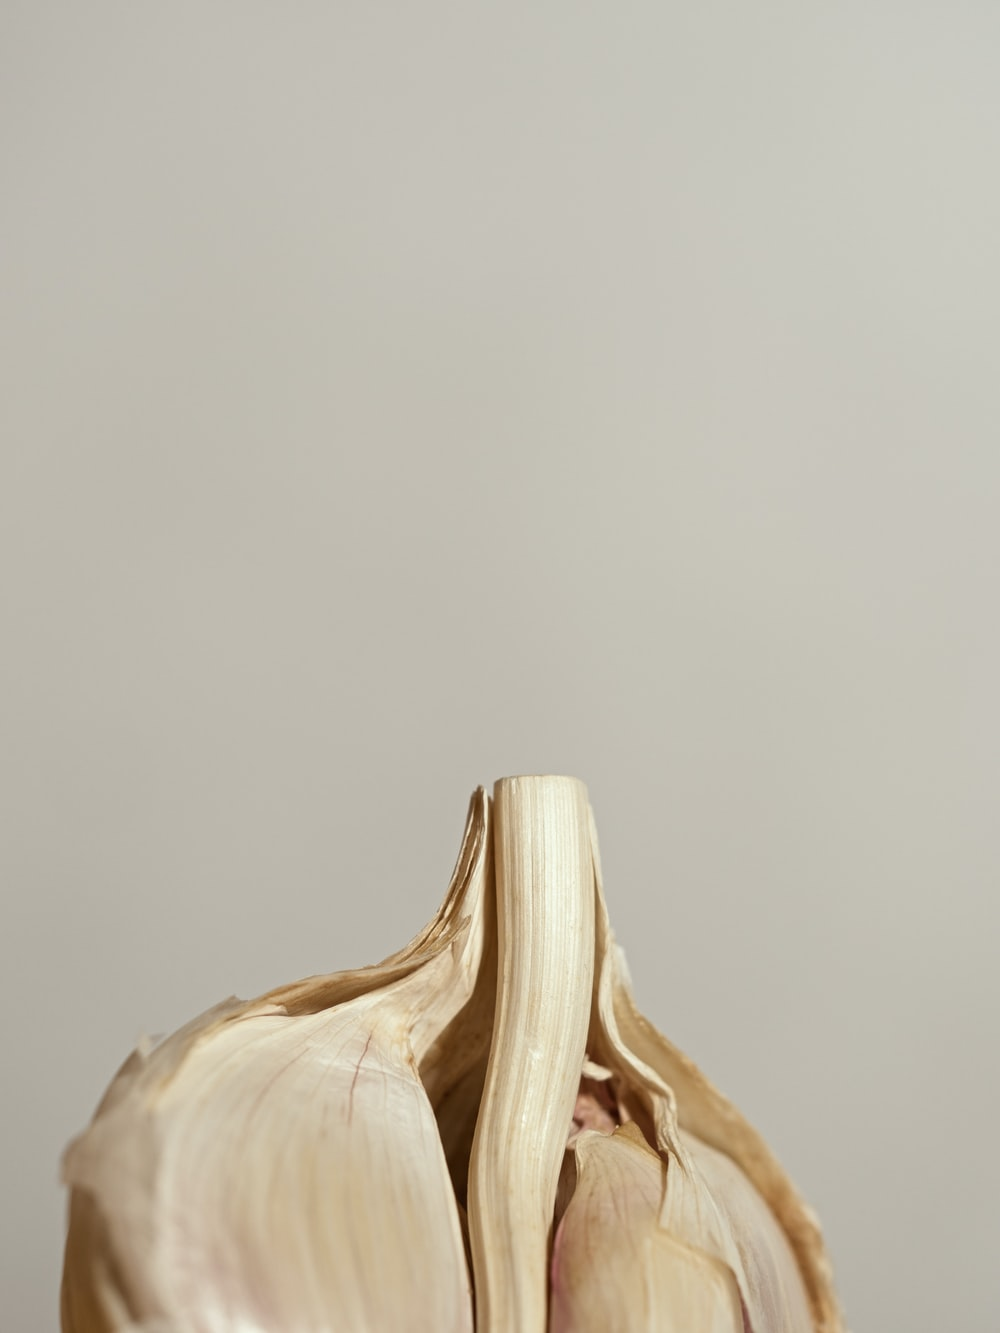 white and brown wooden figurine